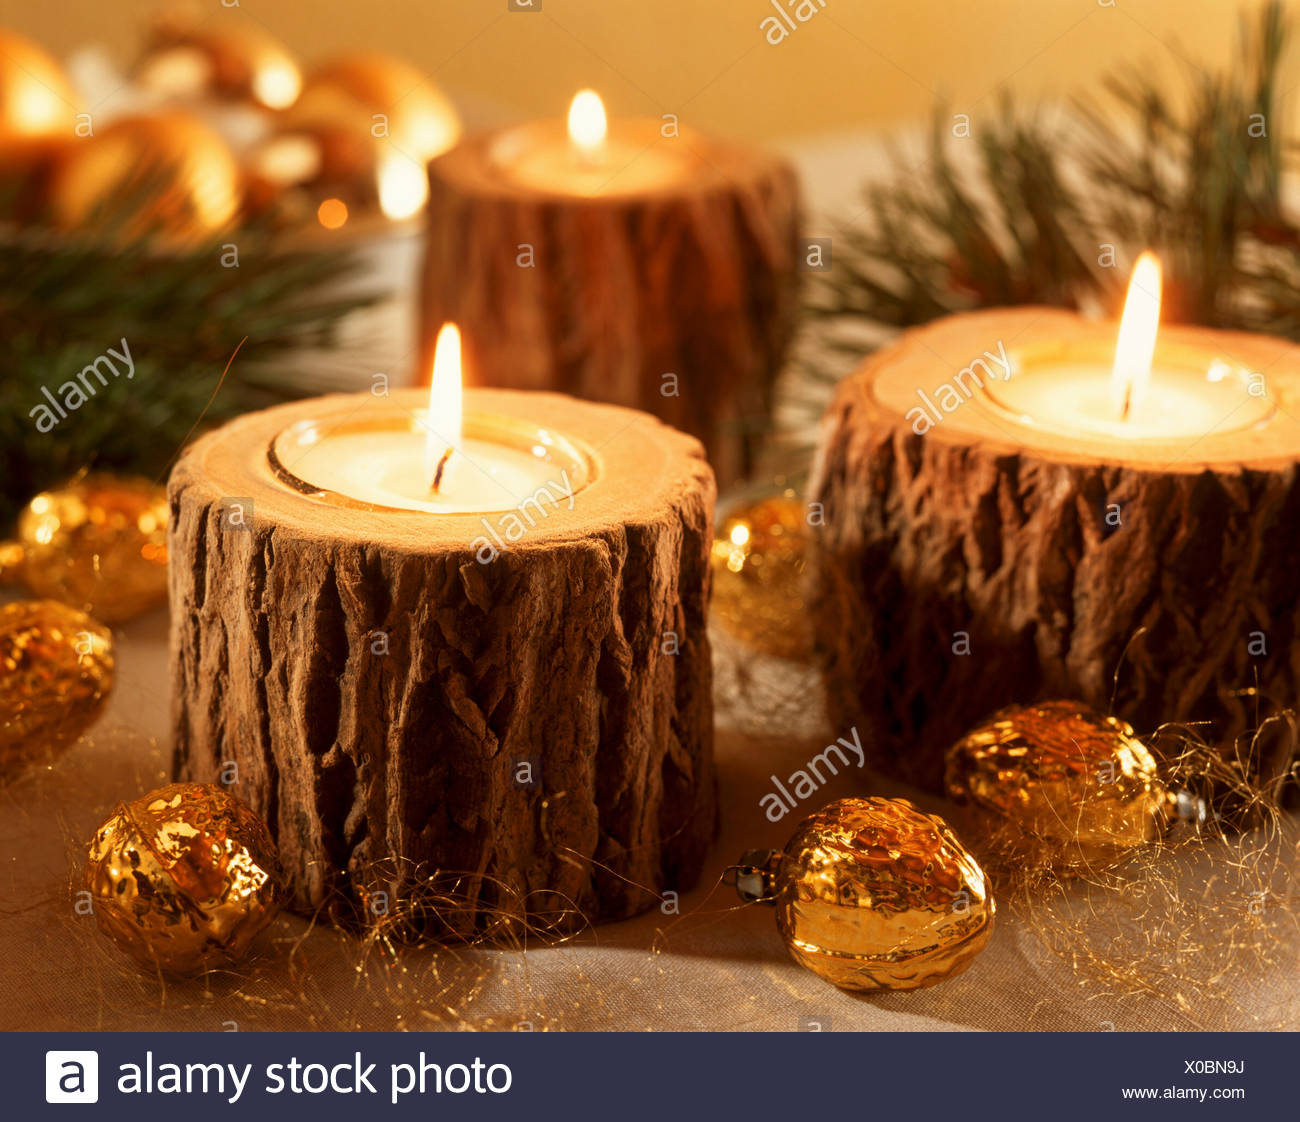 burning tea lights in tree stumps as christmas decorations